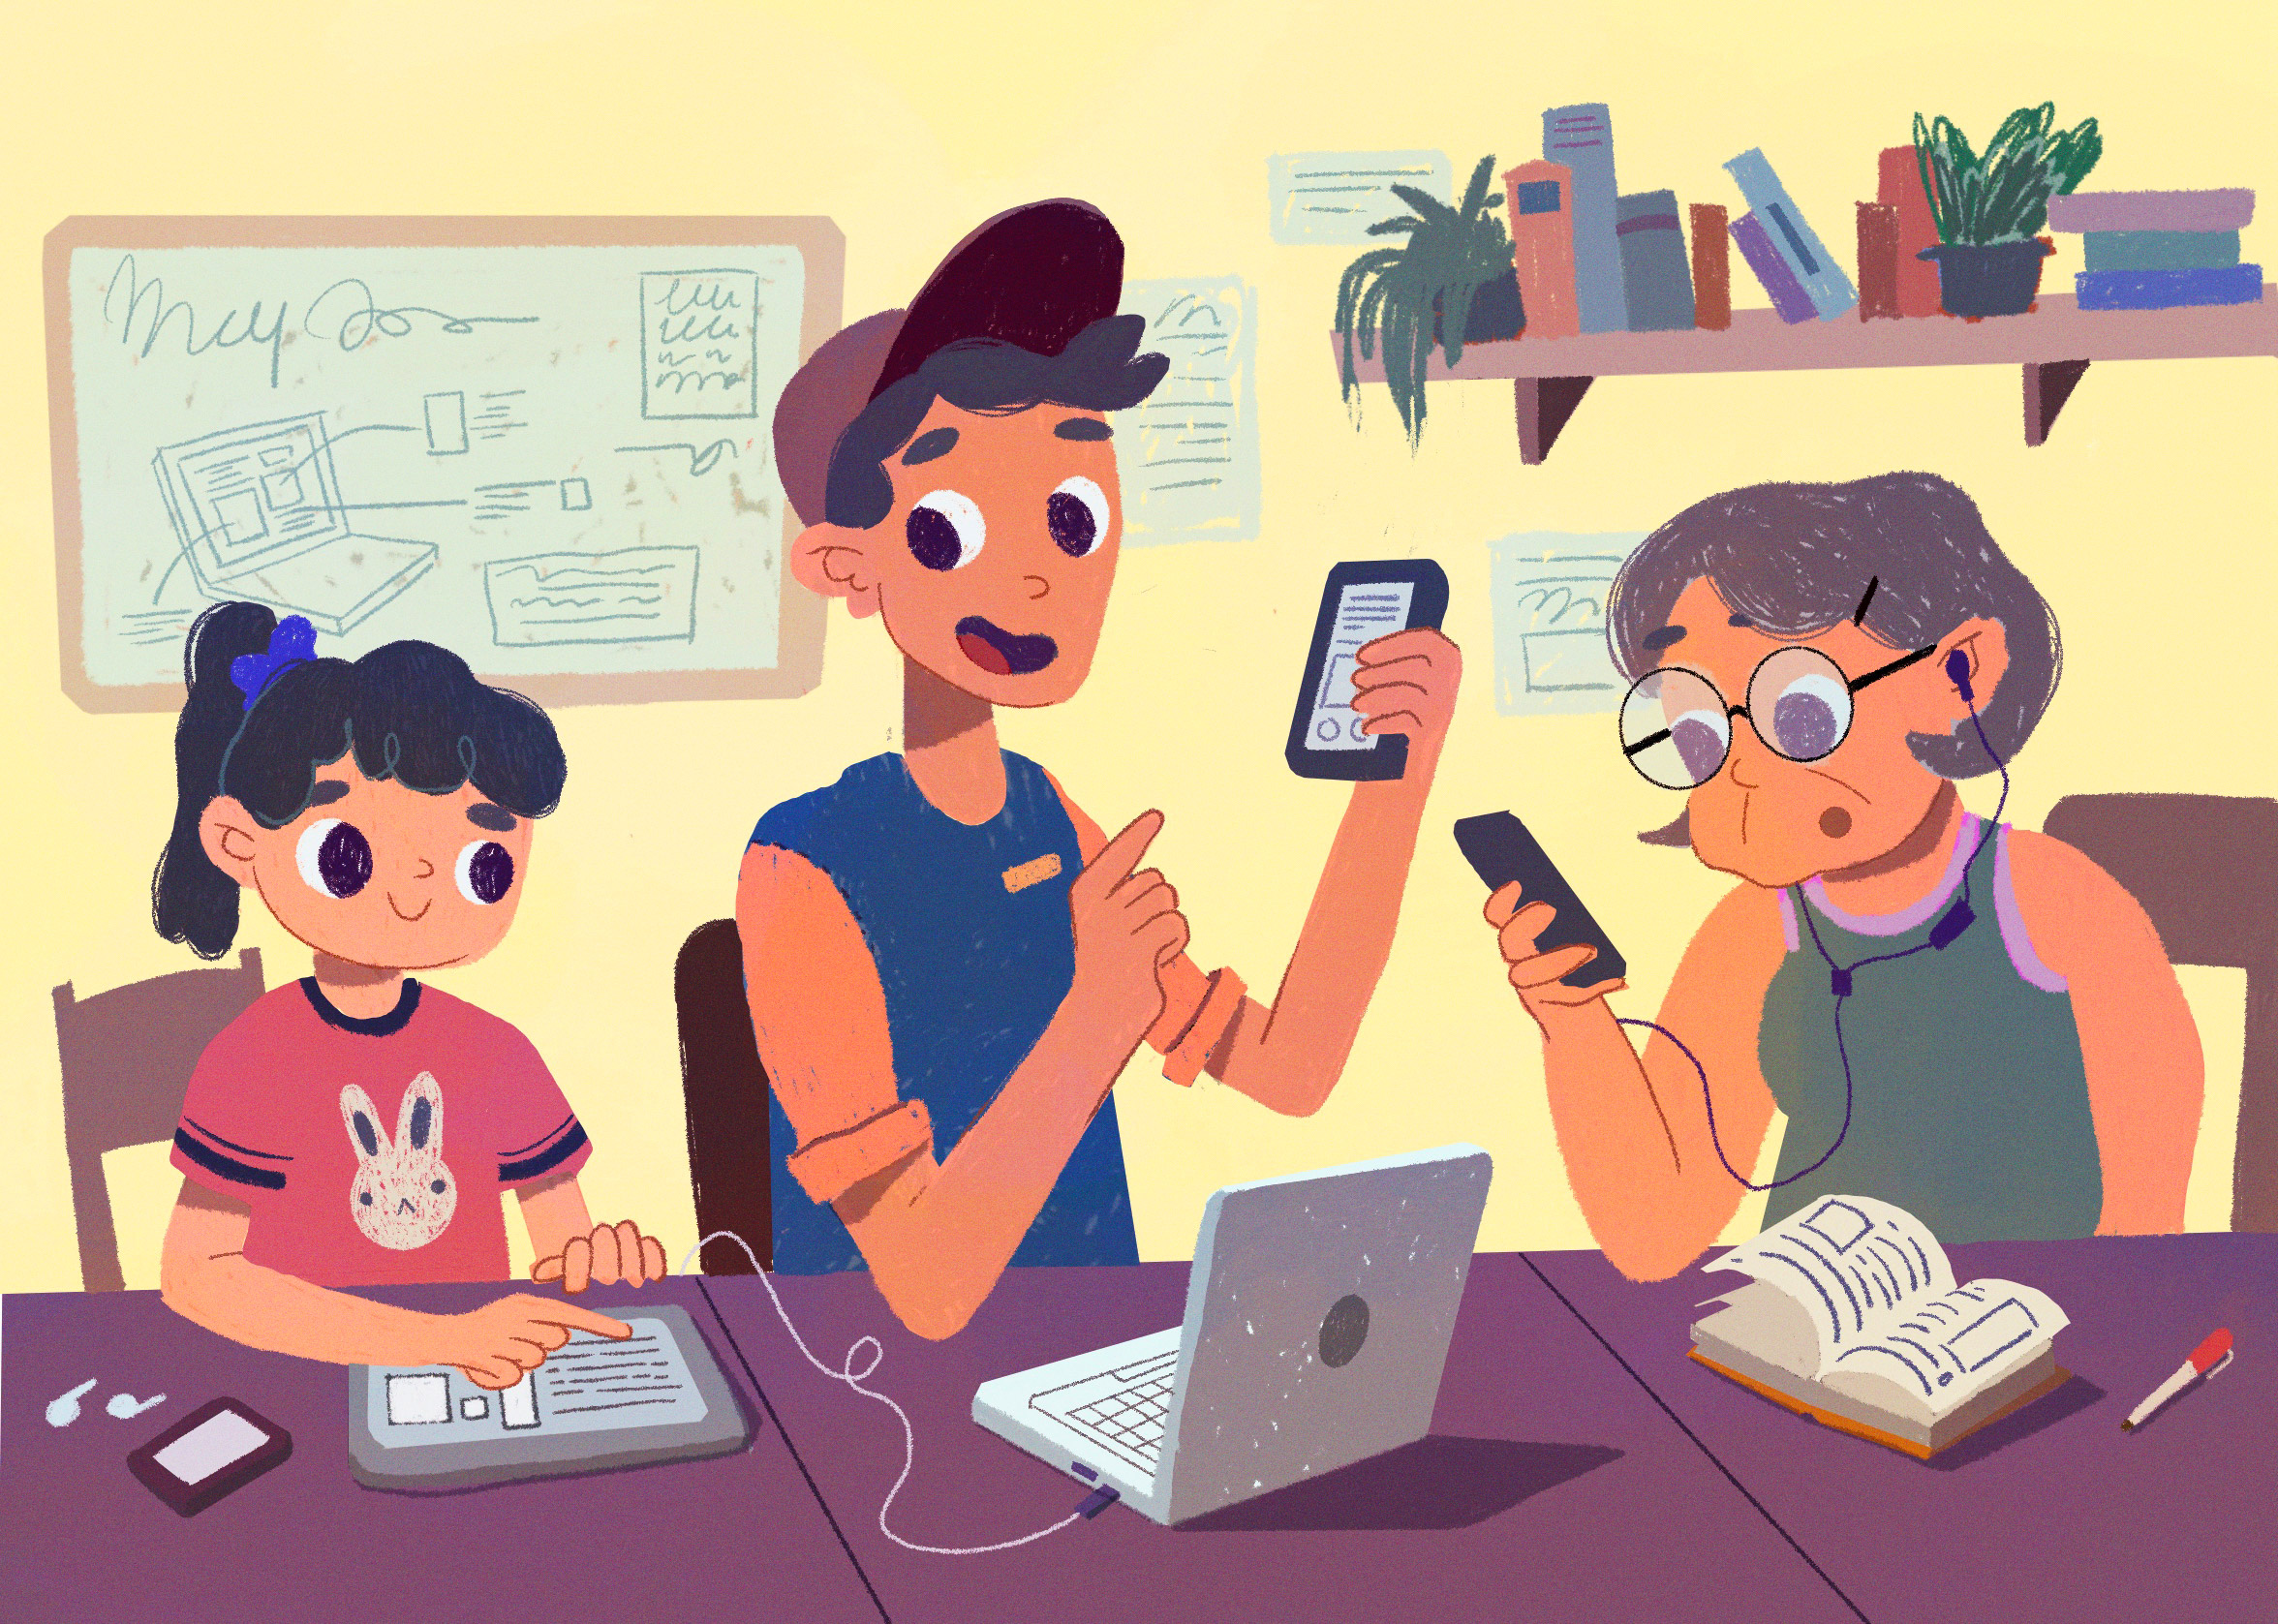 80% of Singaporean Children Under 7 Are Already On The Internet. Should We Be Worried?